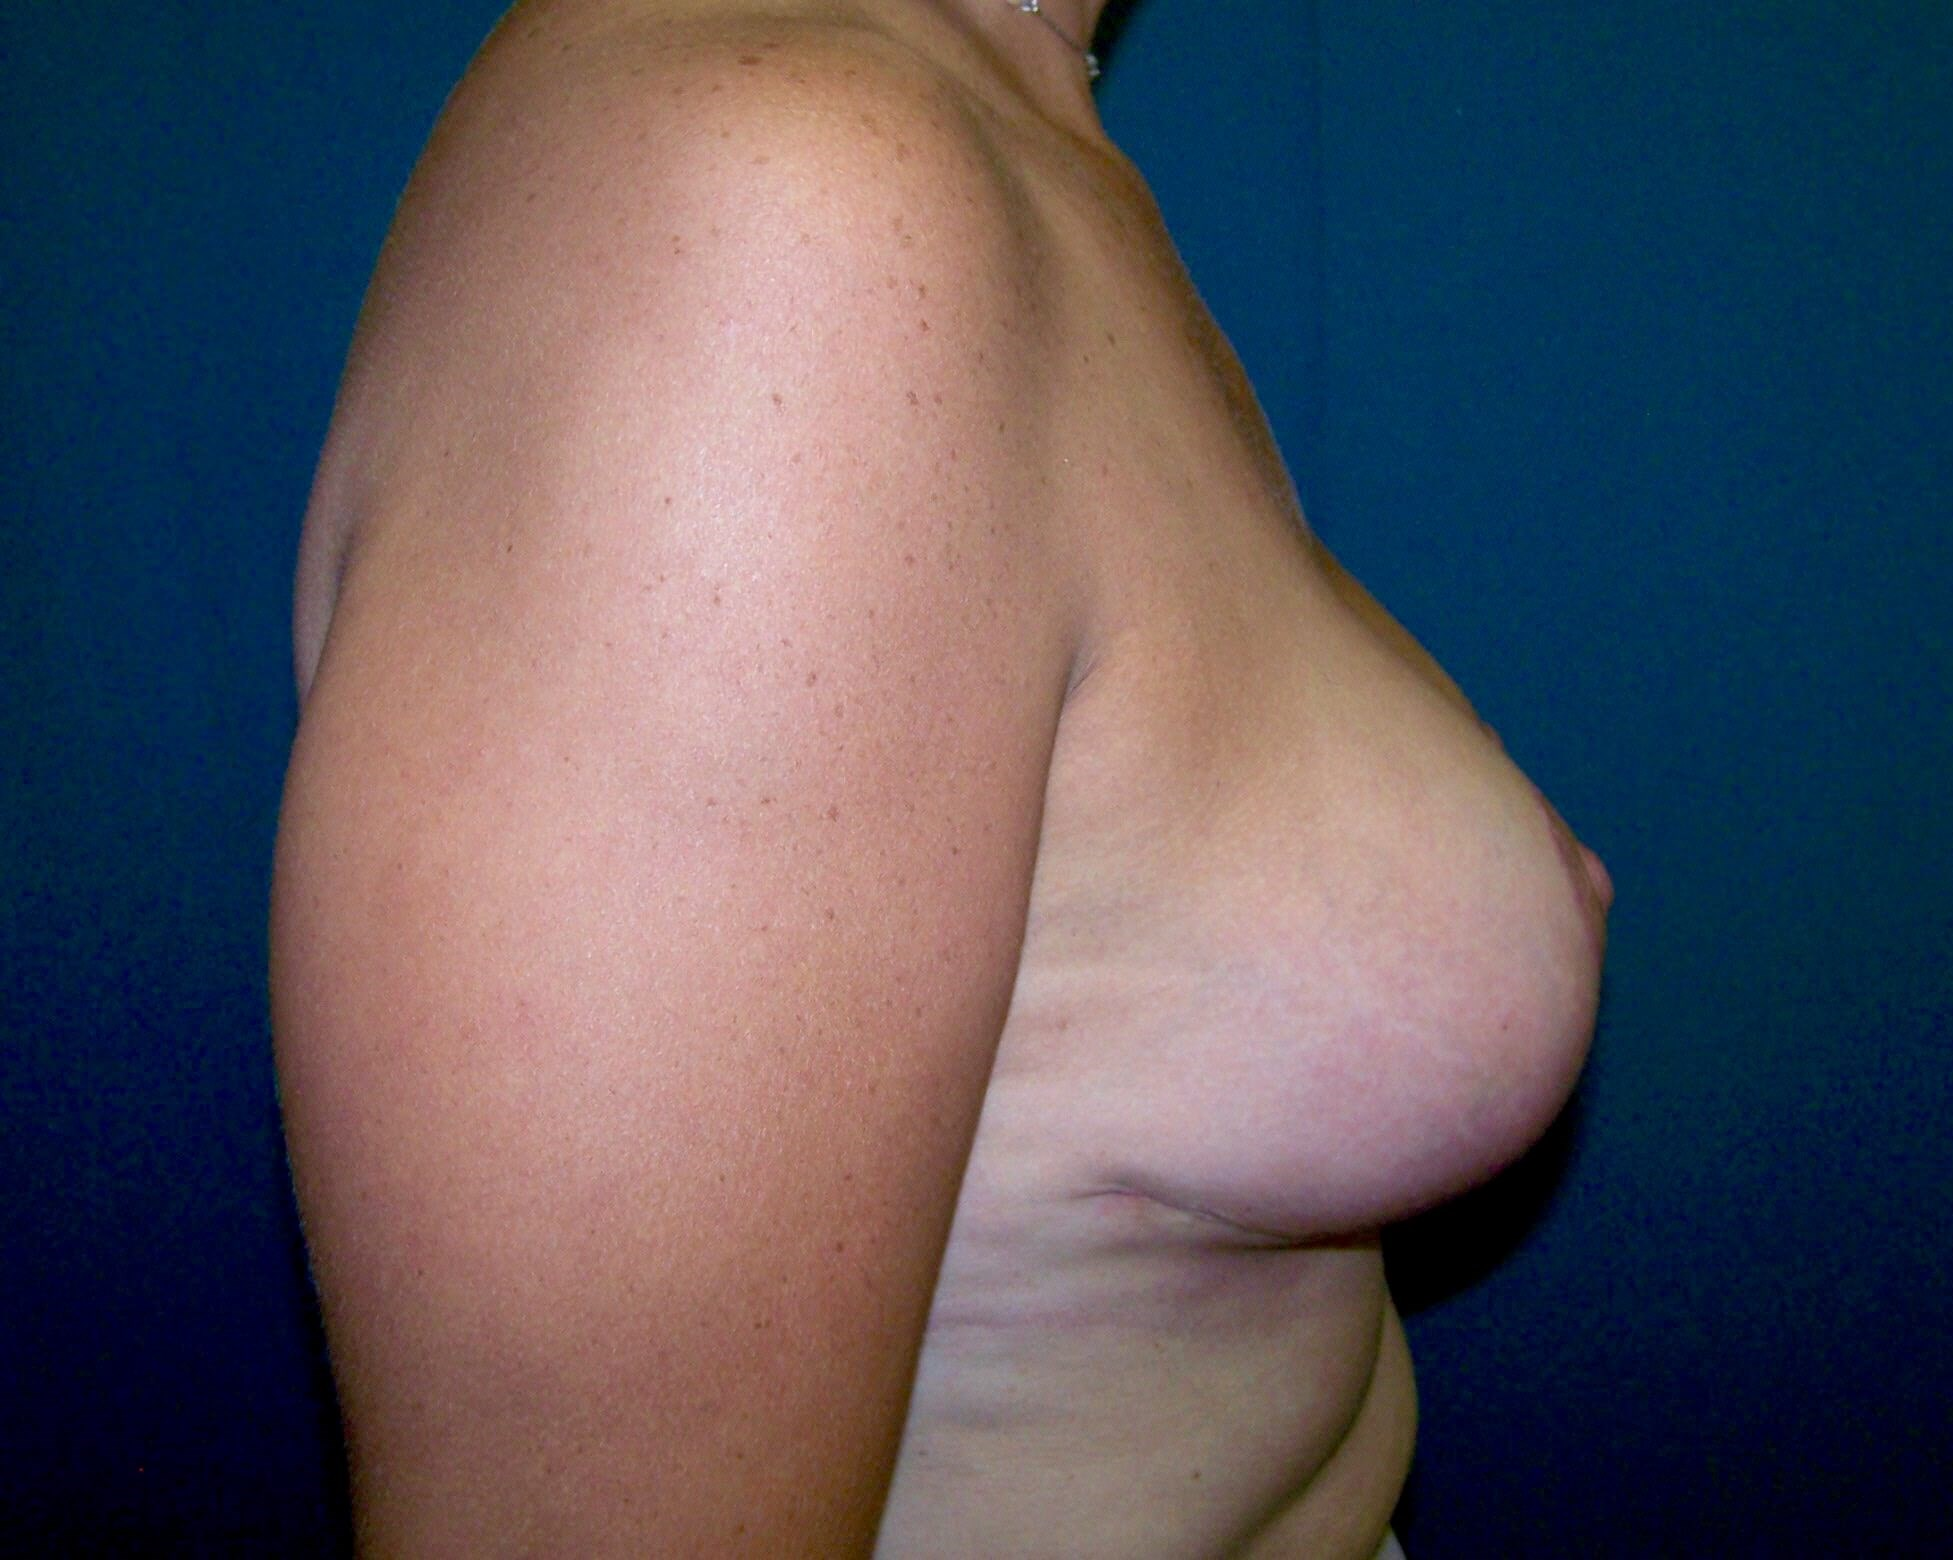 Breast Lift Side View After Breast Lift